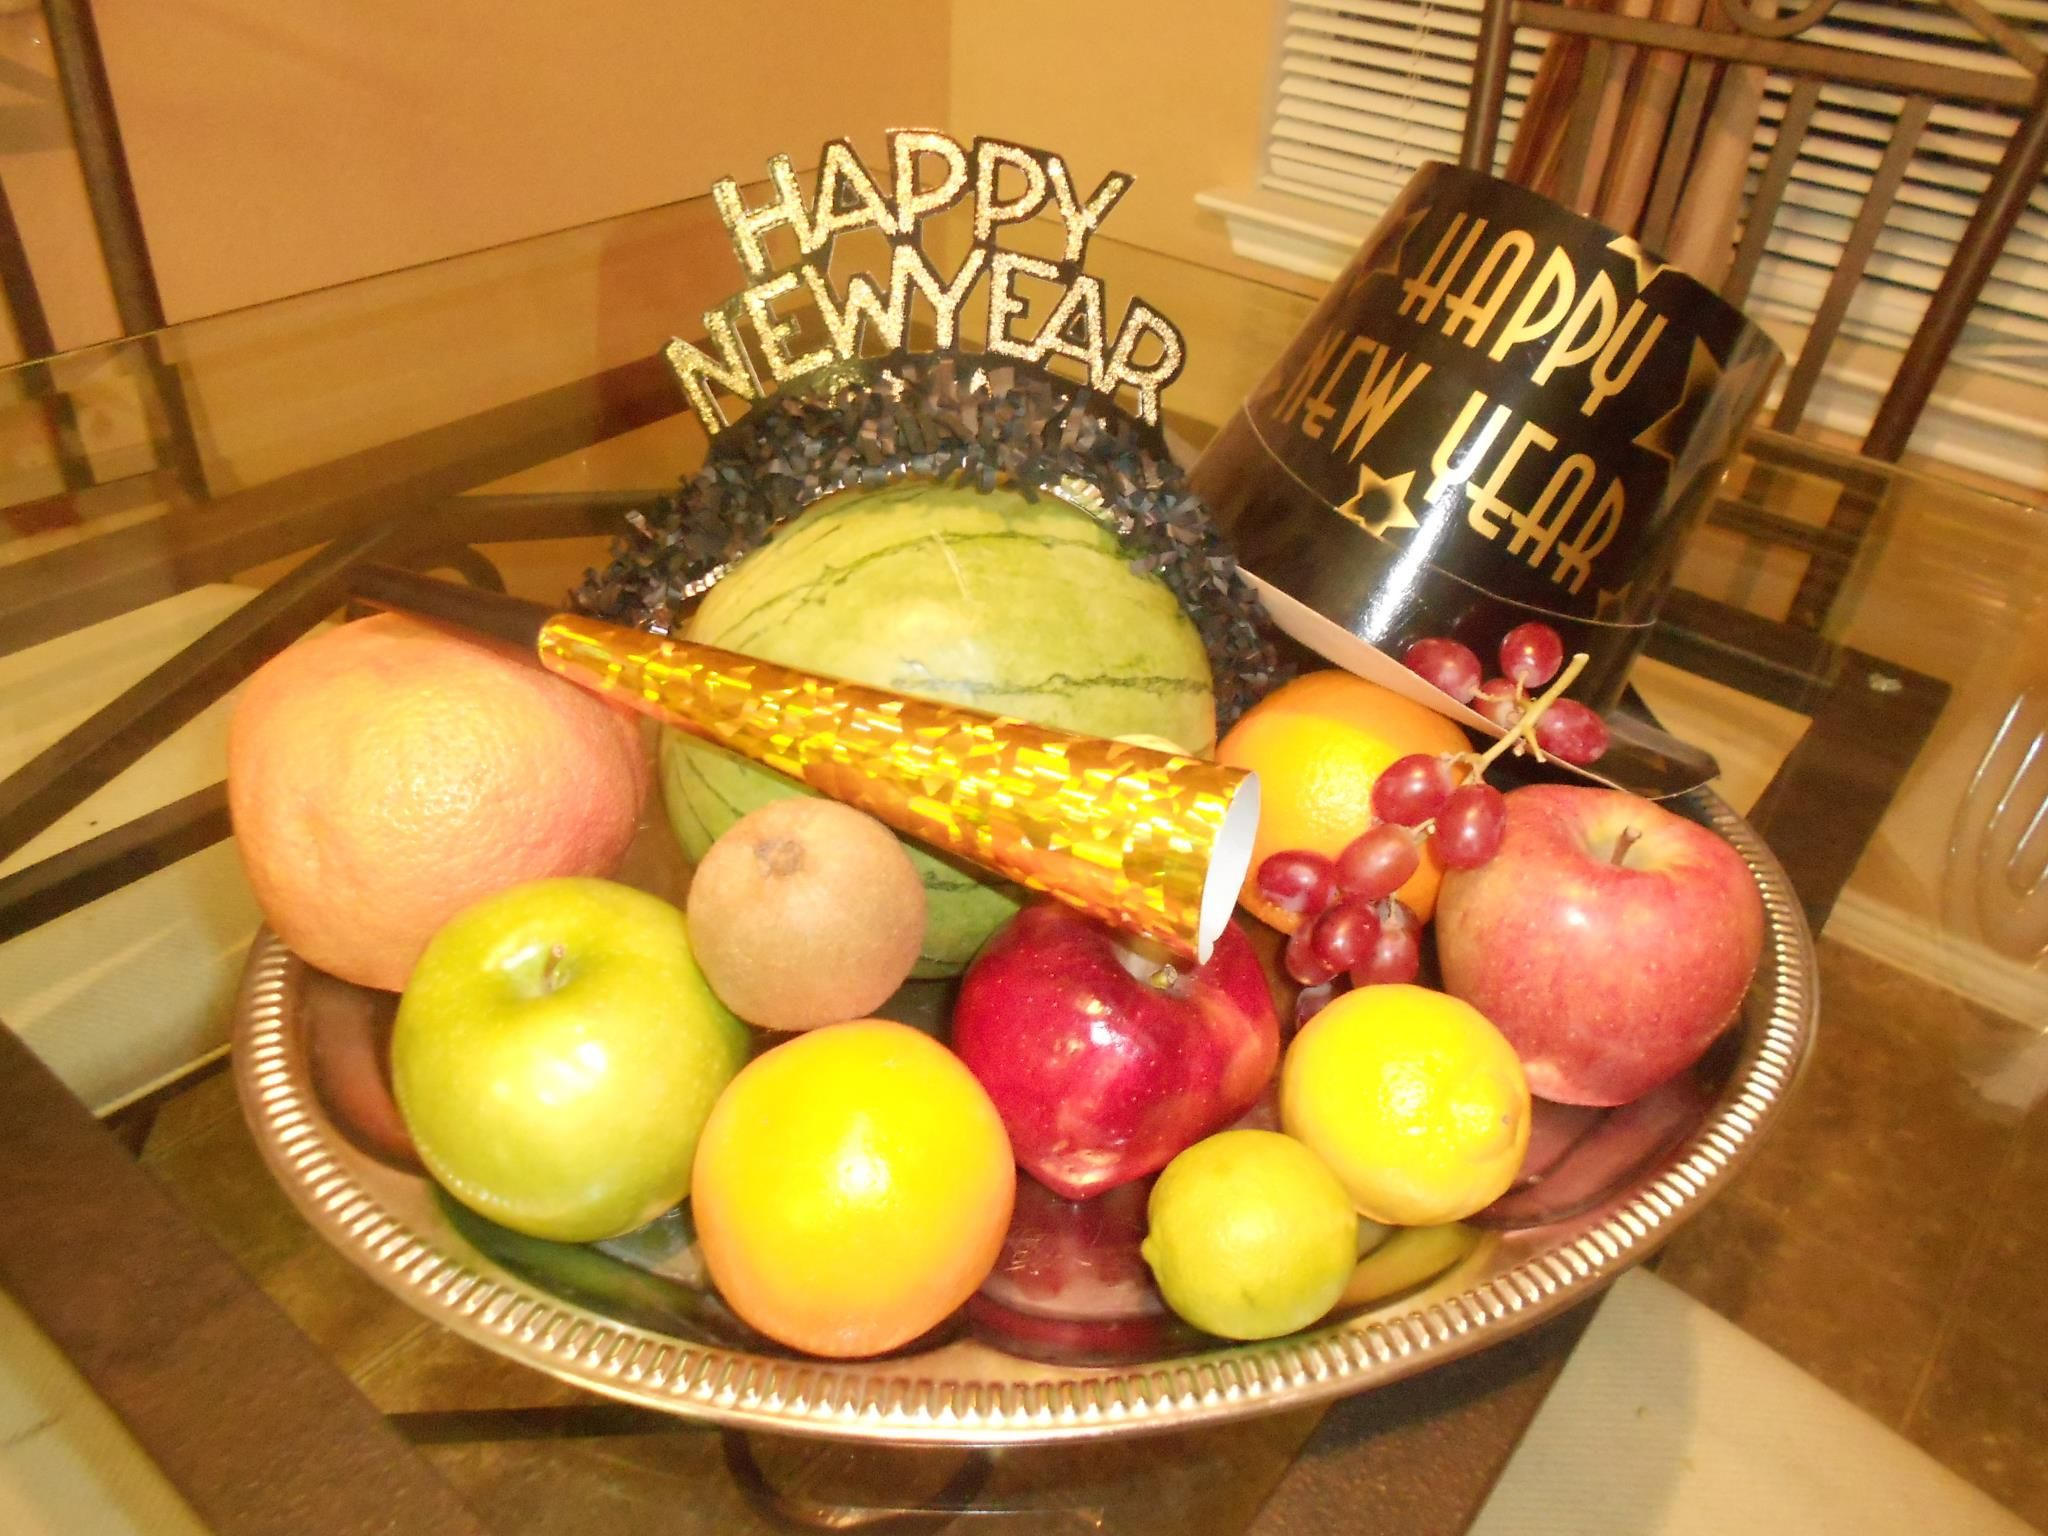 Every New Year S Eve Most Filipinos Gather 12 Round Fruits To Bring Forth Blessings In The Coming Year New Years Eve Traditions New Years Traditions Newyear